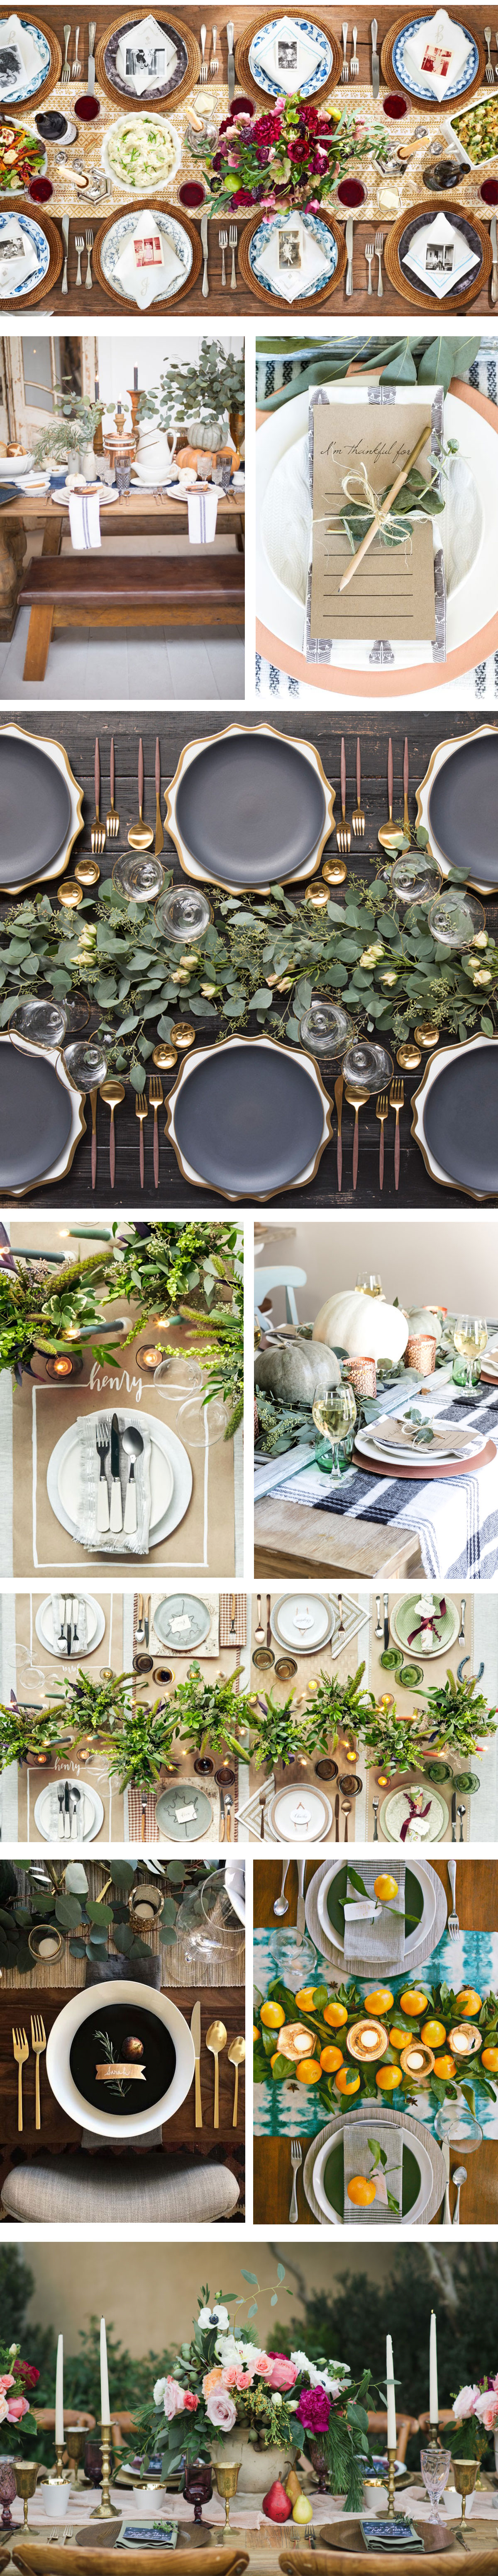 blackband_design_thanksgiving_table_decor-ideas